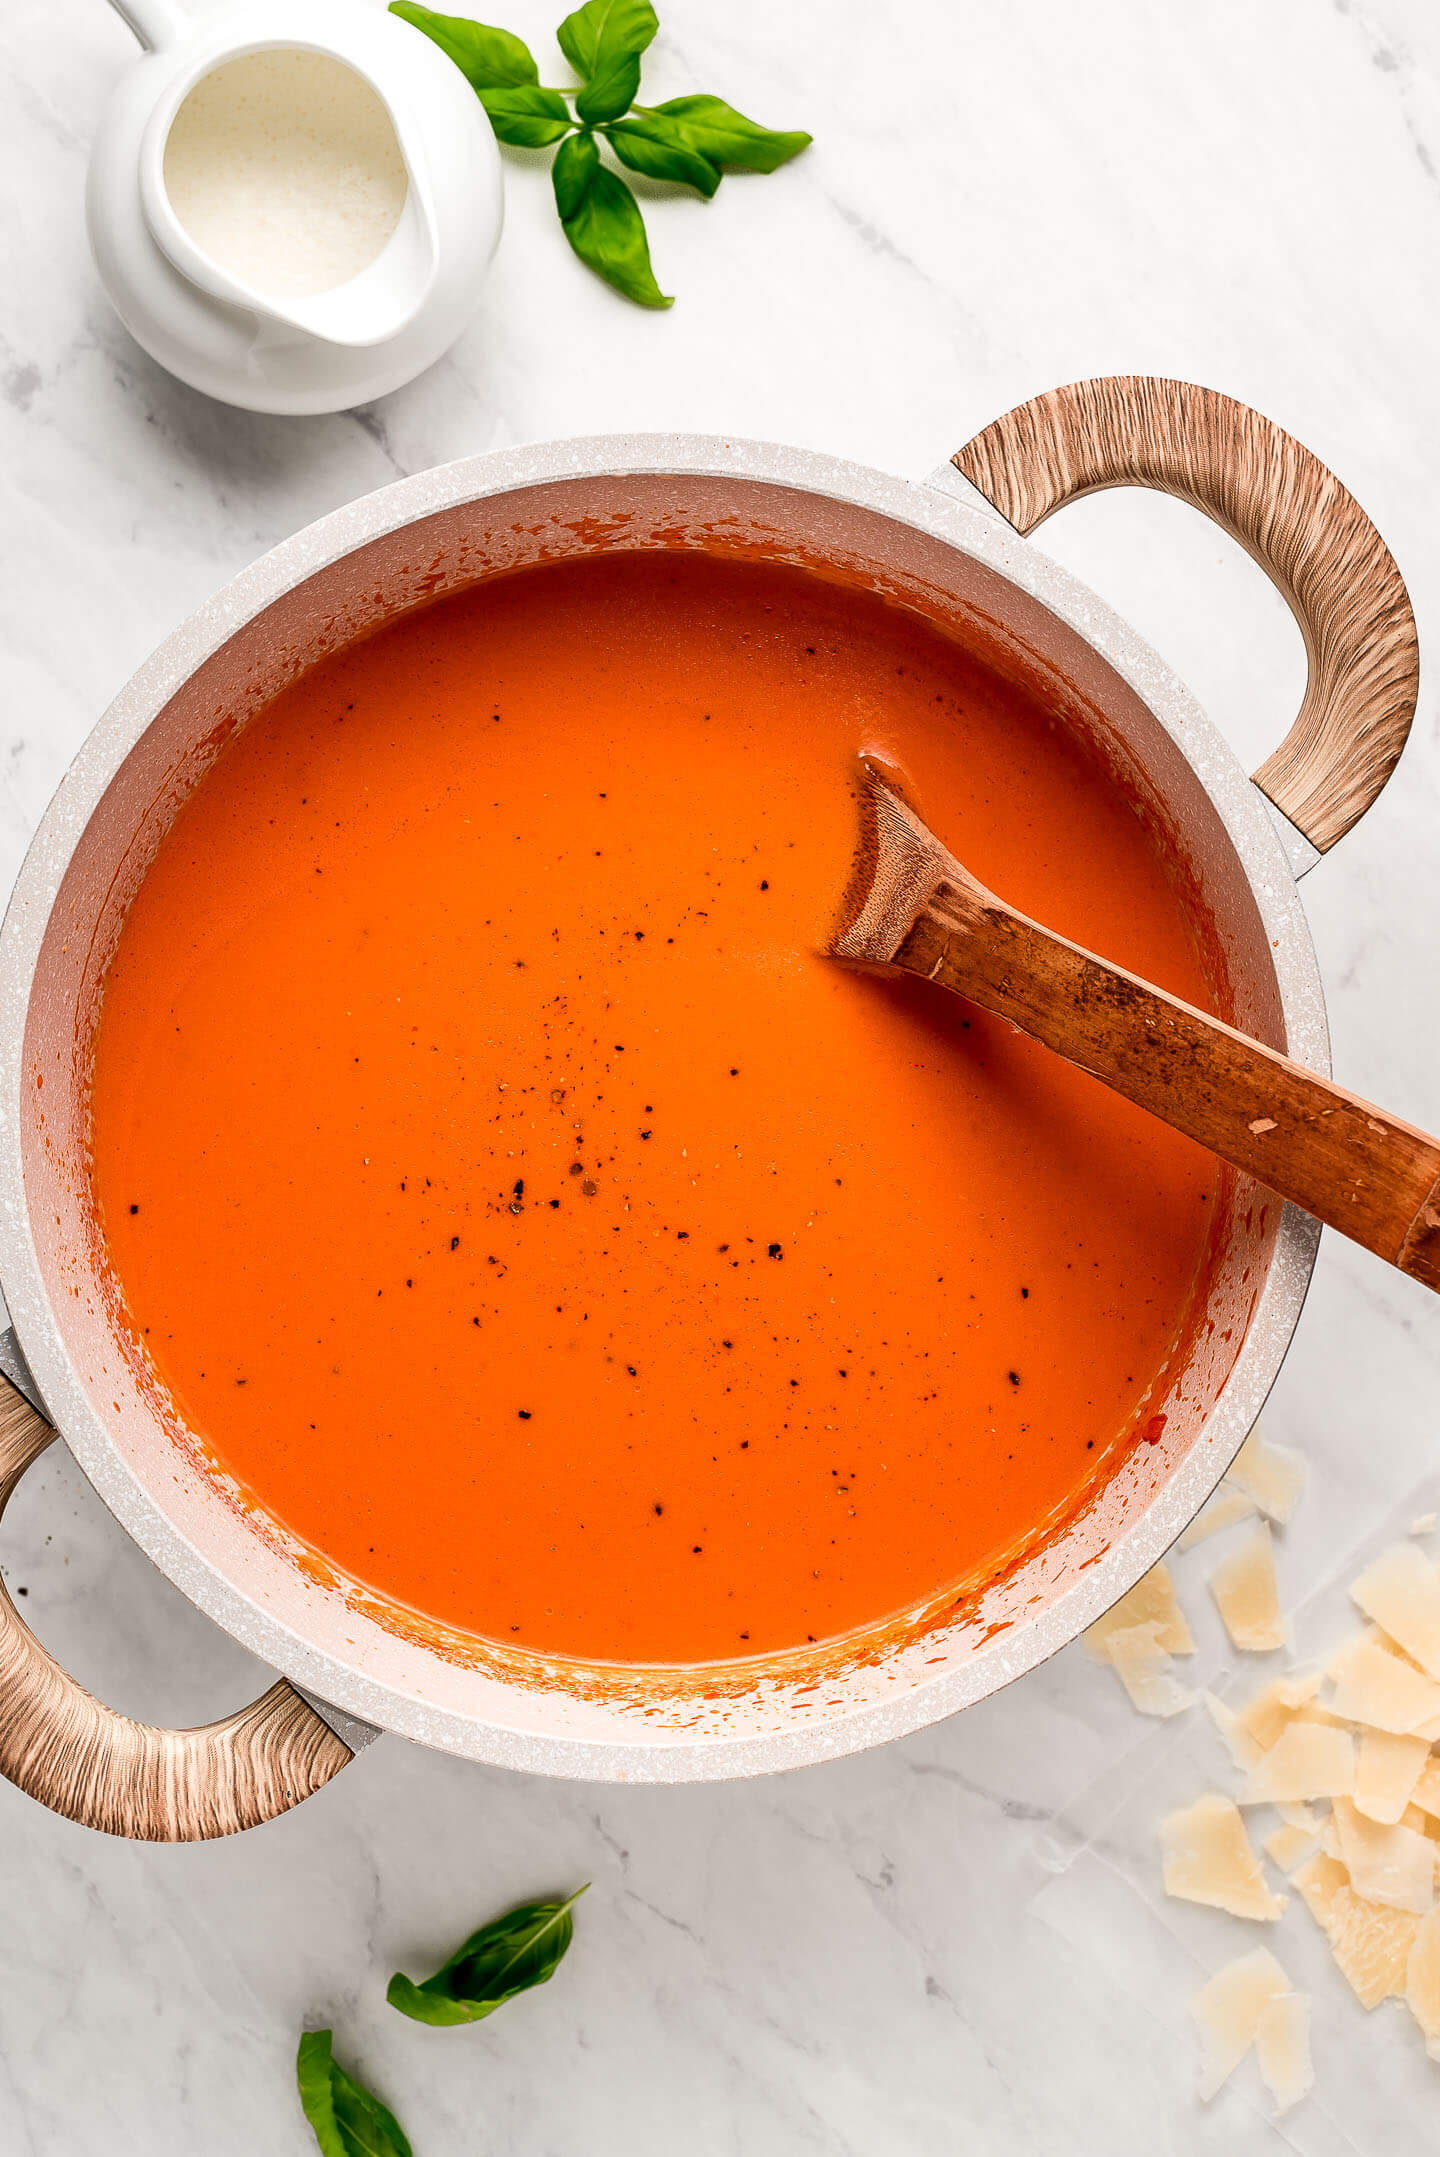 A large pot of Tomato Soup sprinkled with black pepper and parmesan and basil on the table.